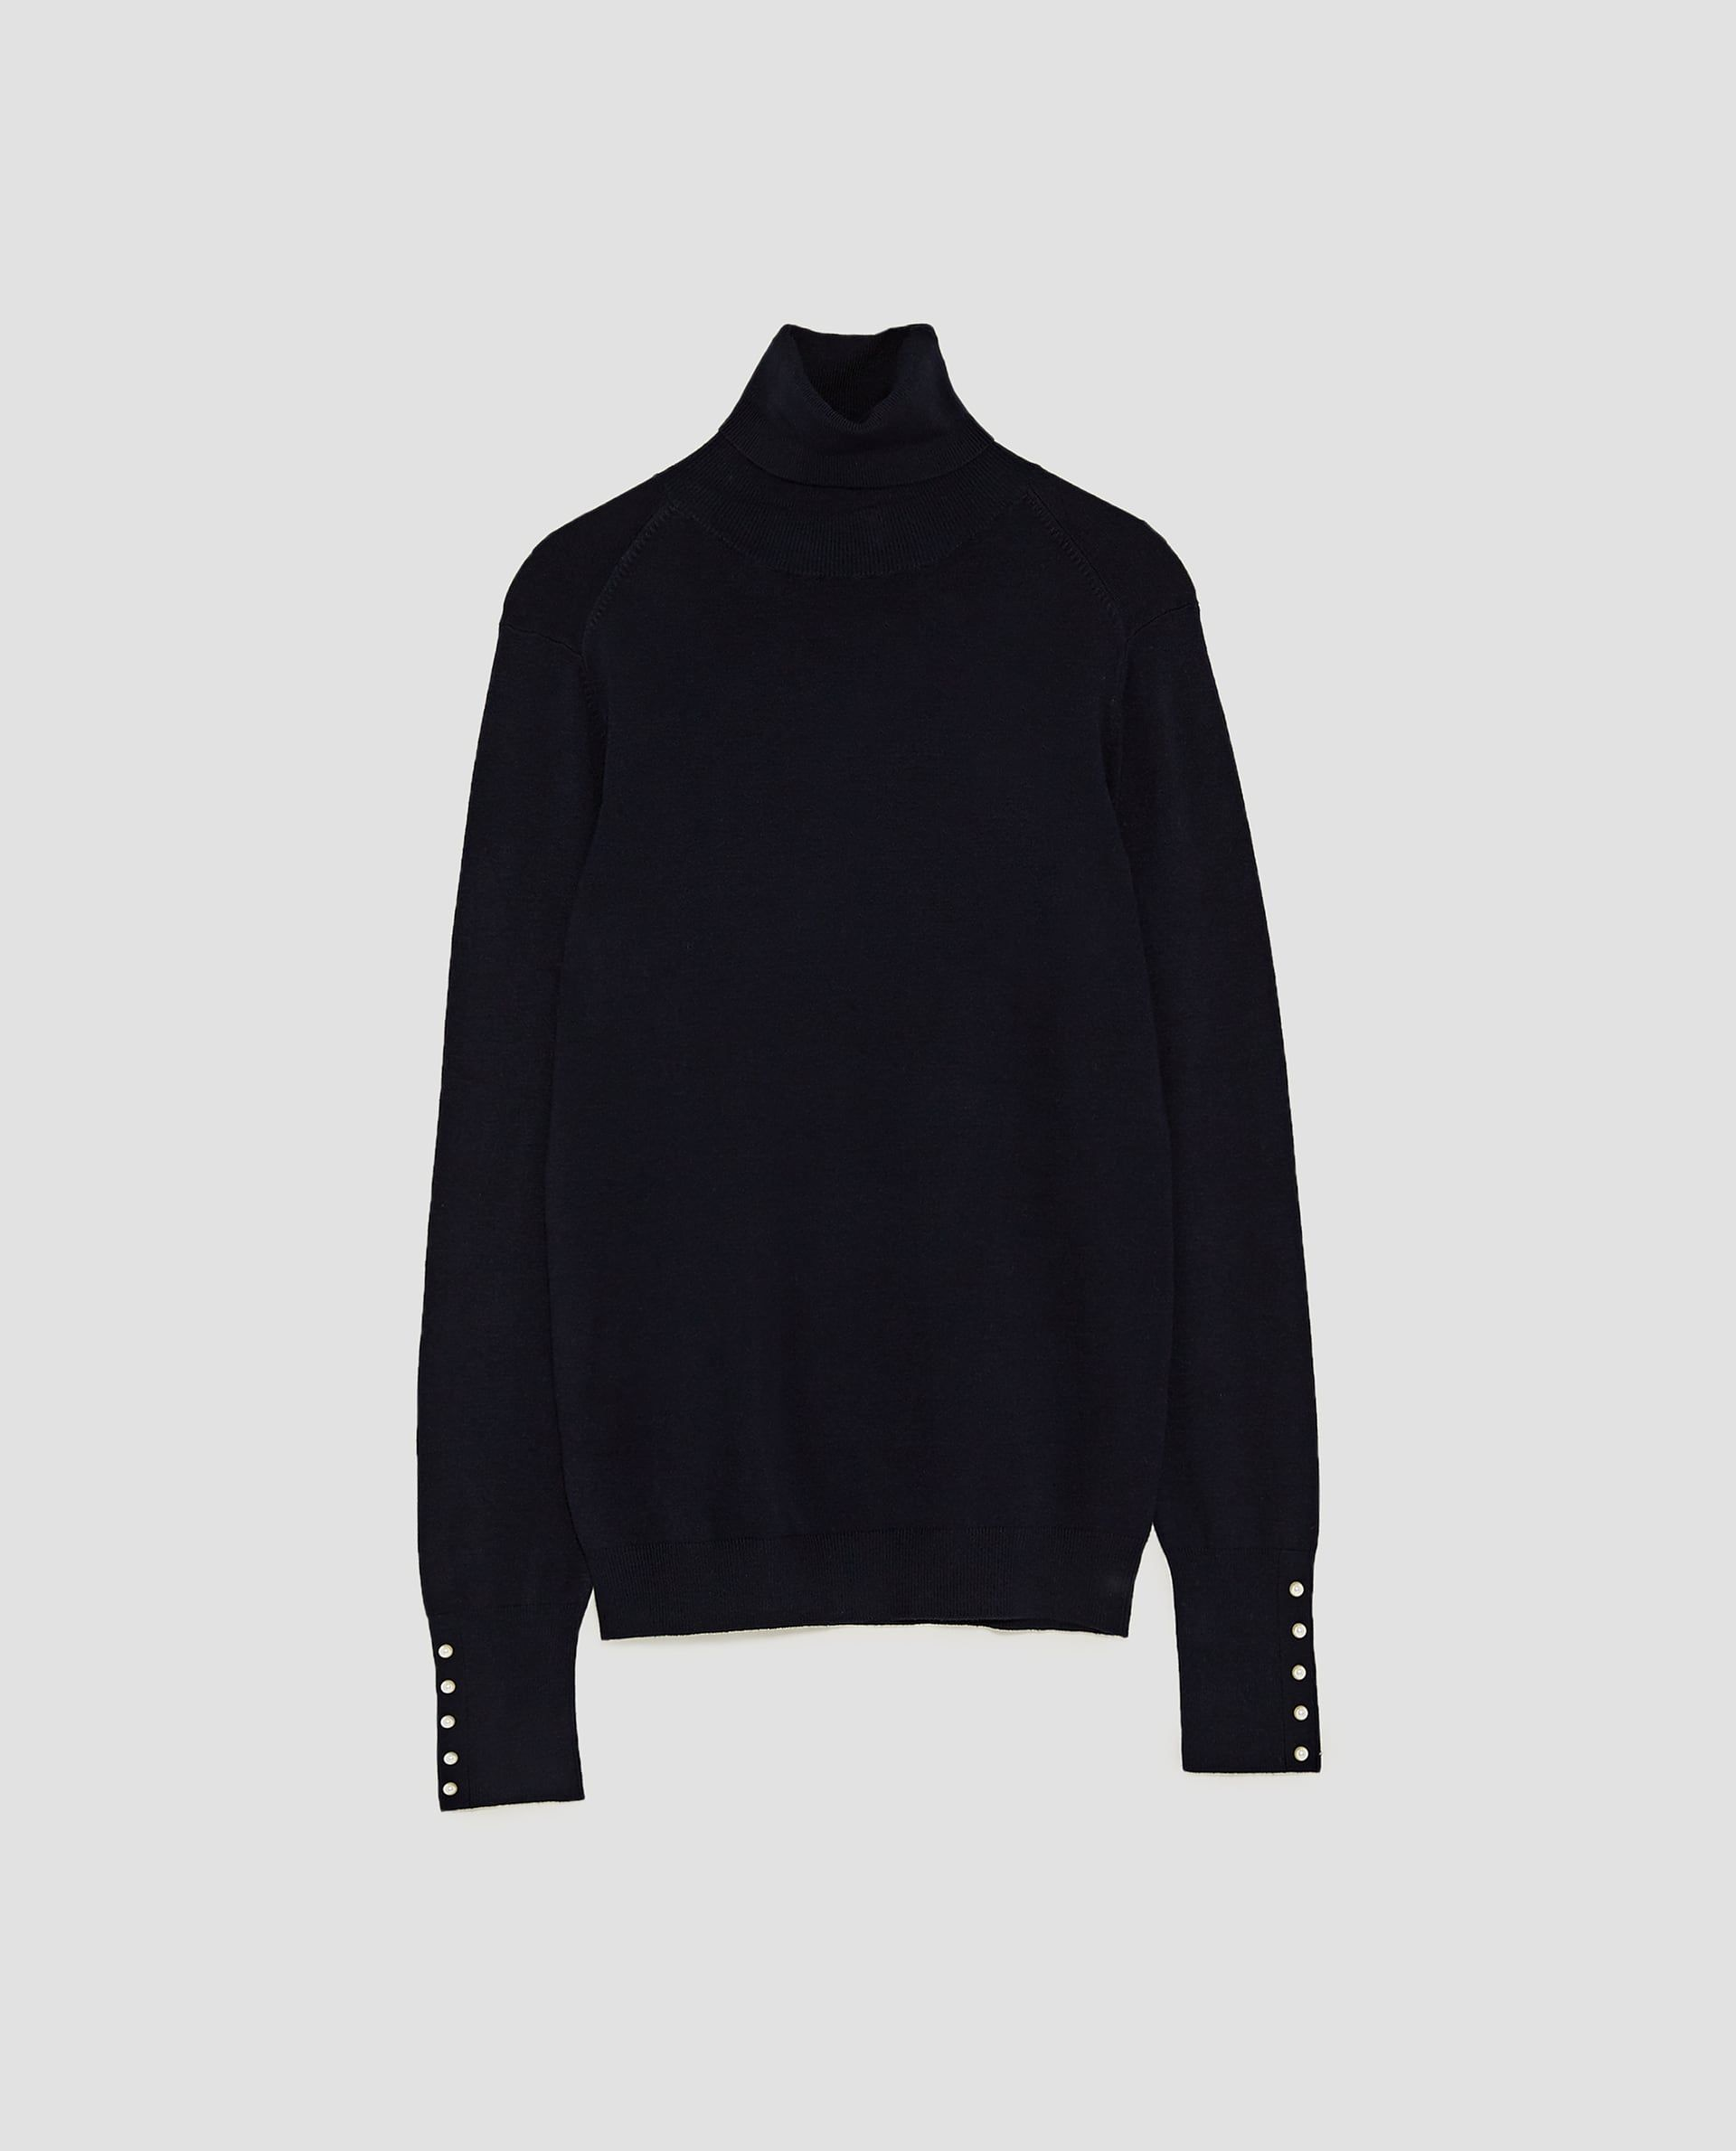 1d4dfe9c0 Image 6 of TURTLENECK SWEATER WITH PEARL BUTTONS from Zara ...